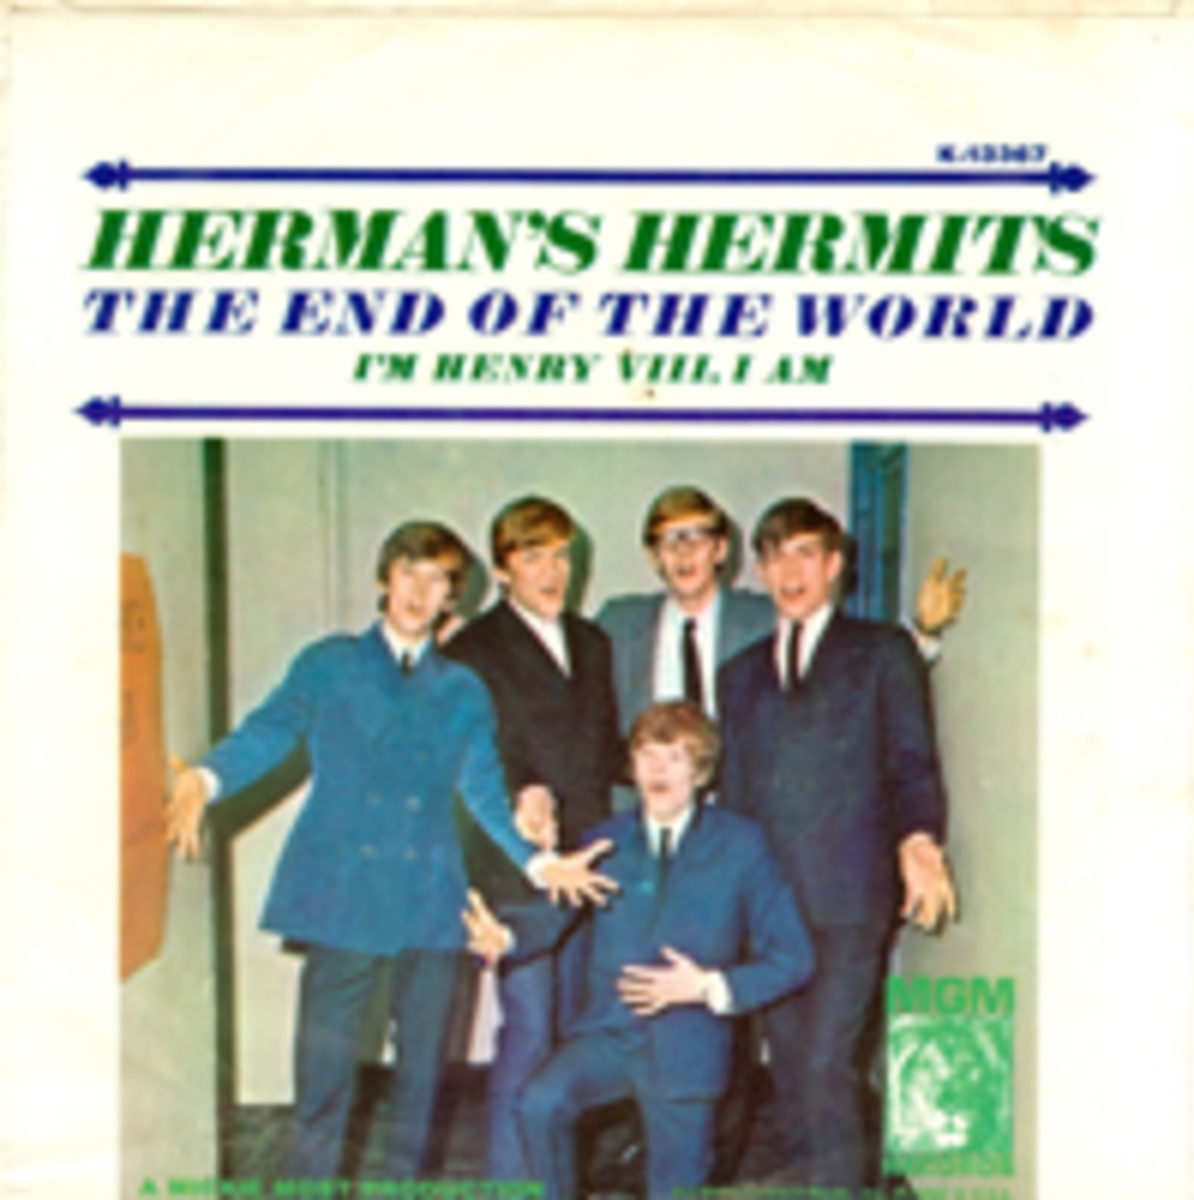 Herman's Hermits The End of the World picture sleeve